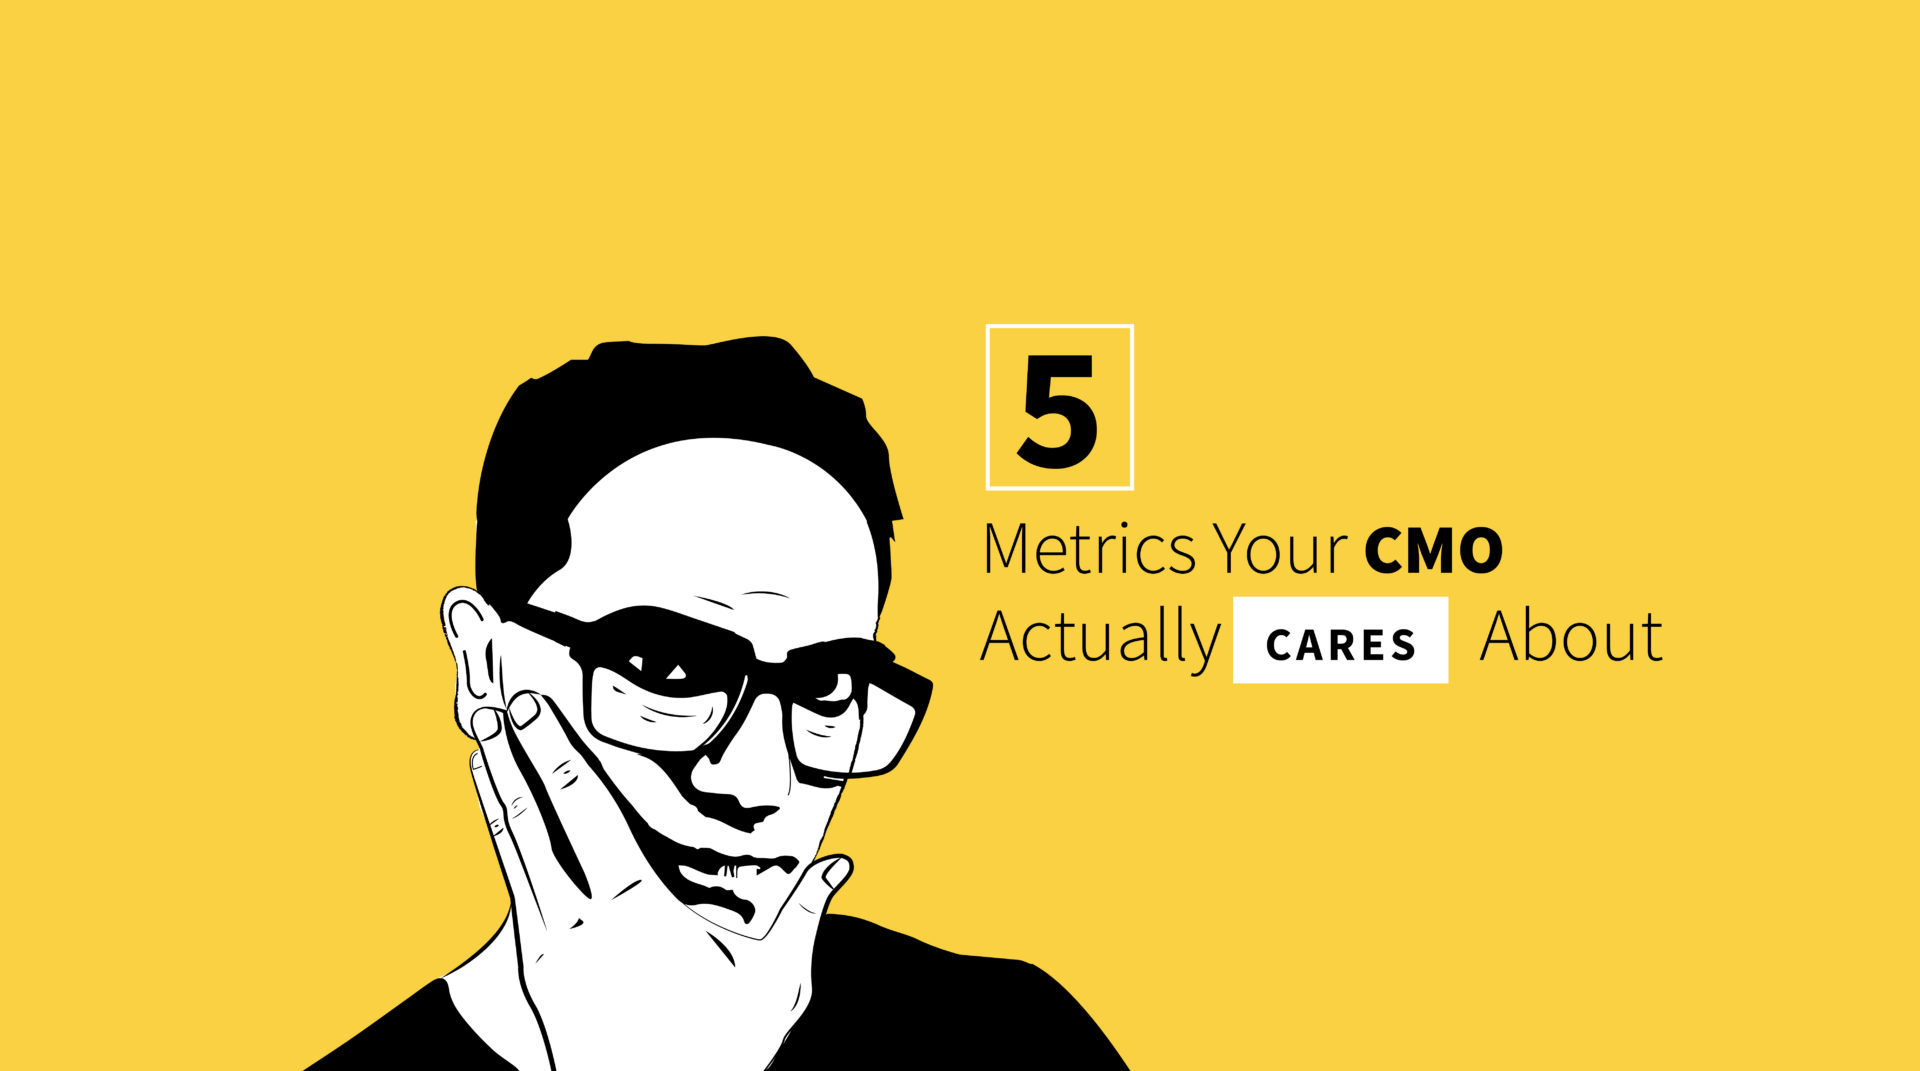 5 Most Important Marketing Metrics Your CMO Actually Cares About